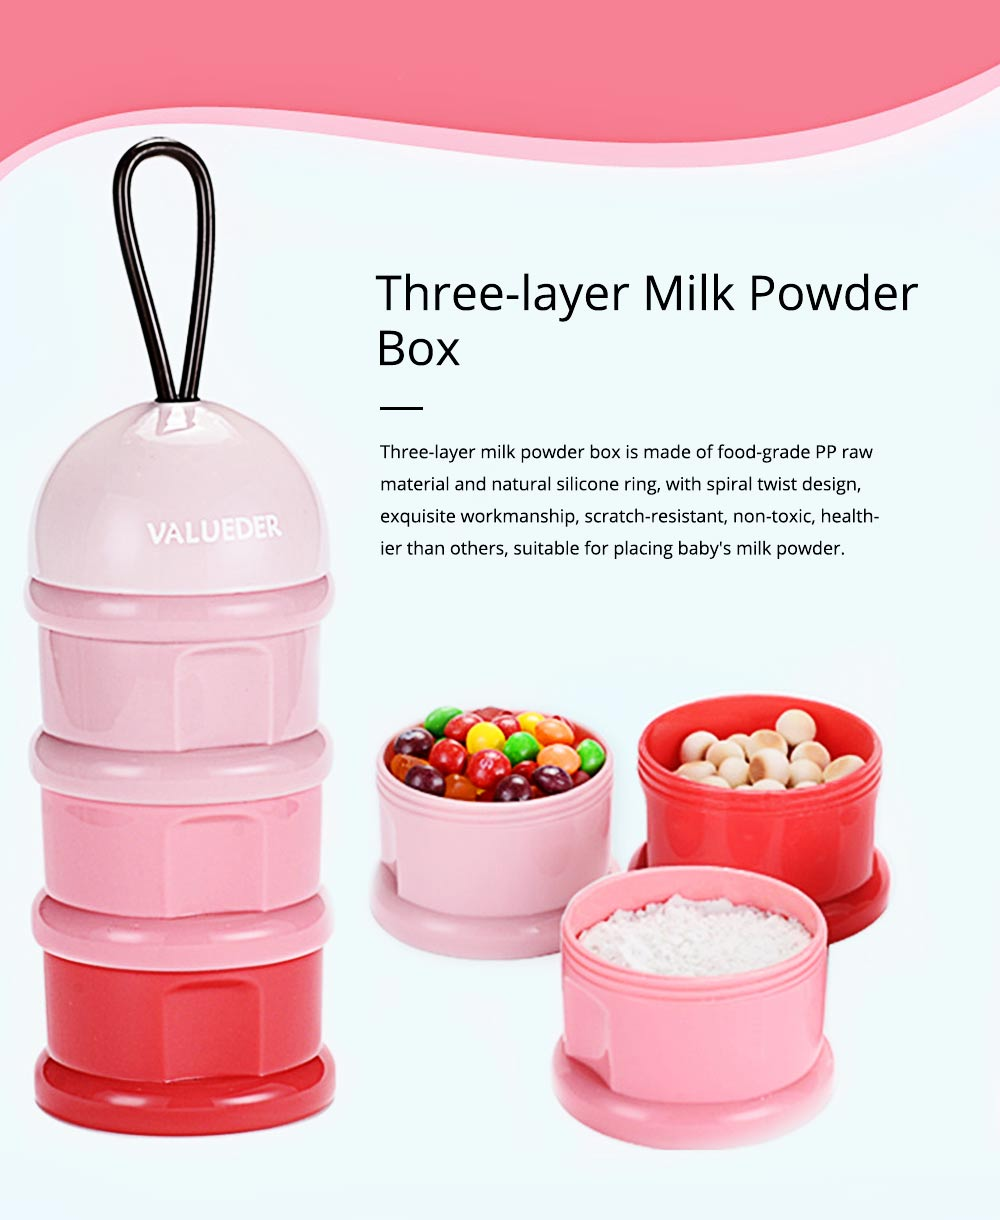 Baby Portable 3-layer Milk Powder Box with Wristband and Spiral Twist Design 0